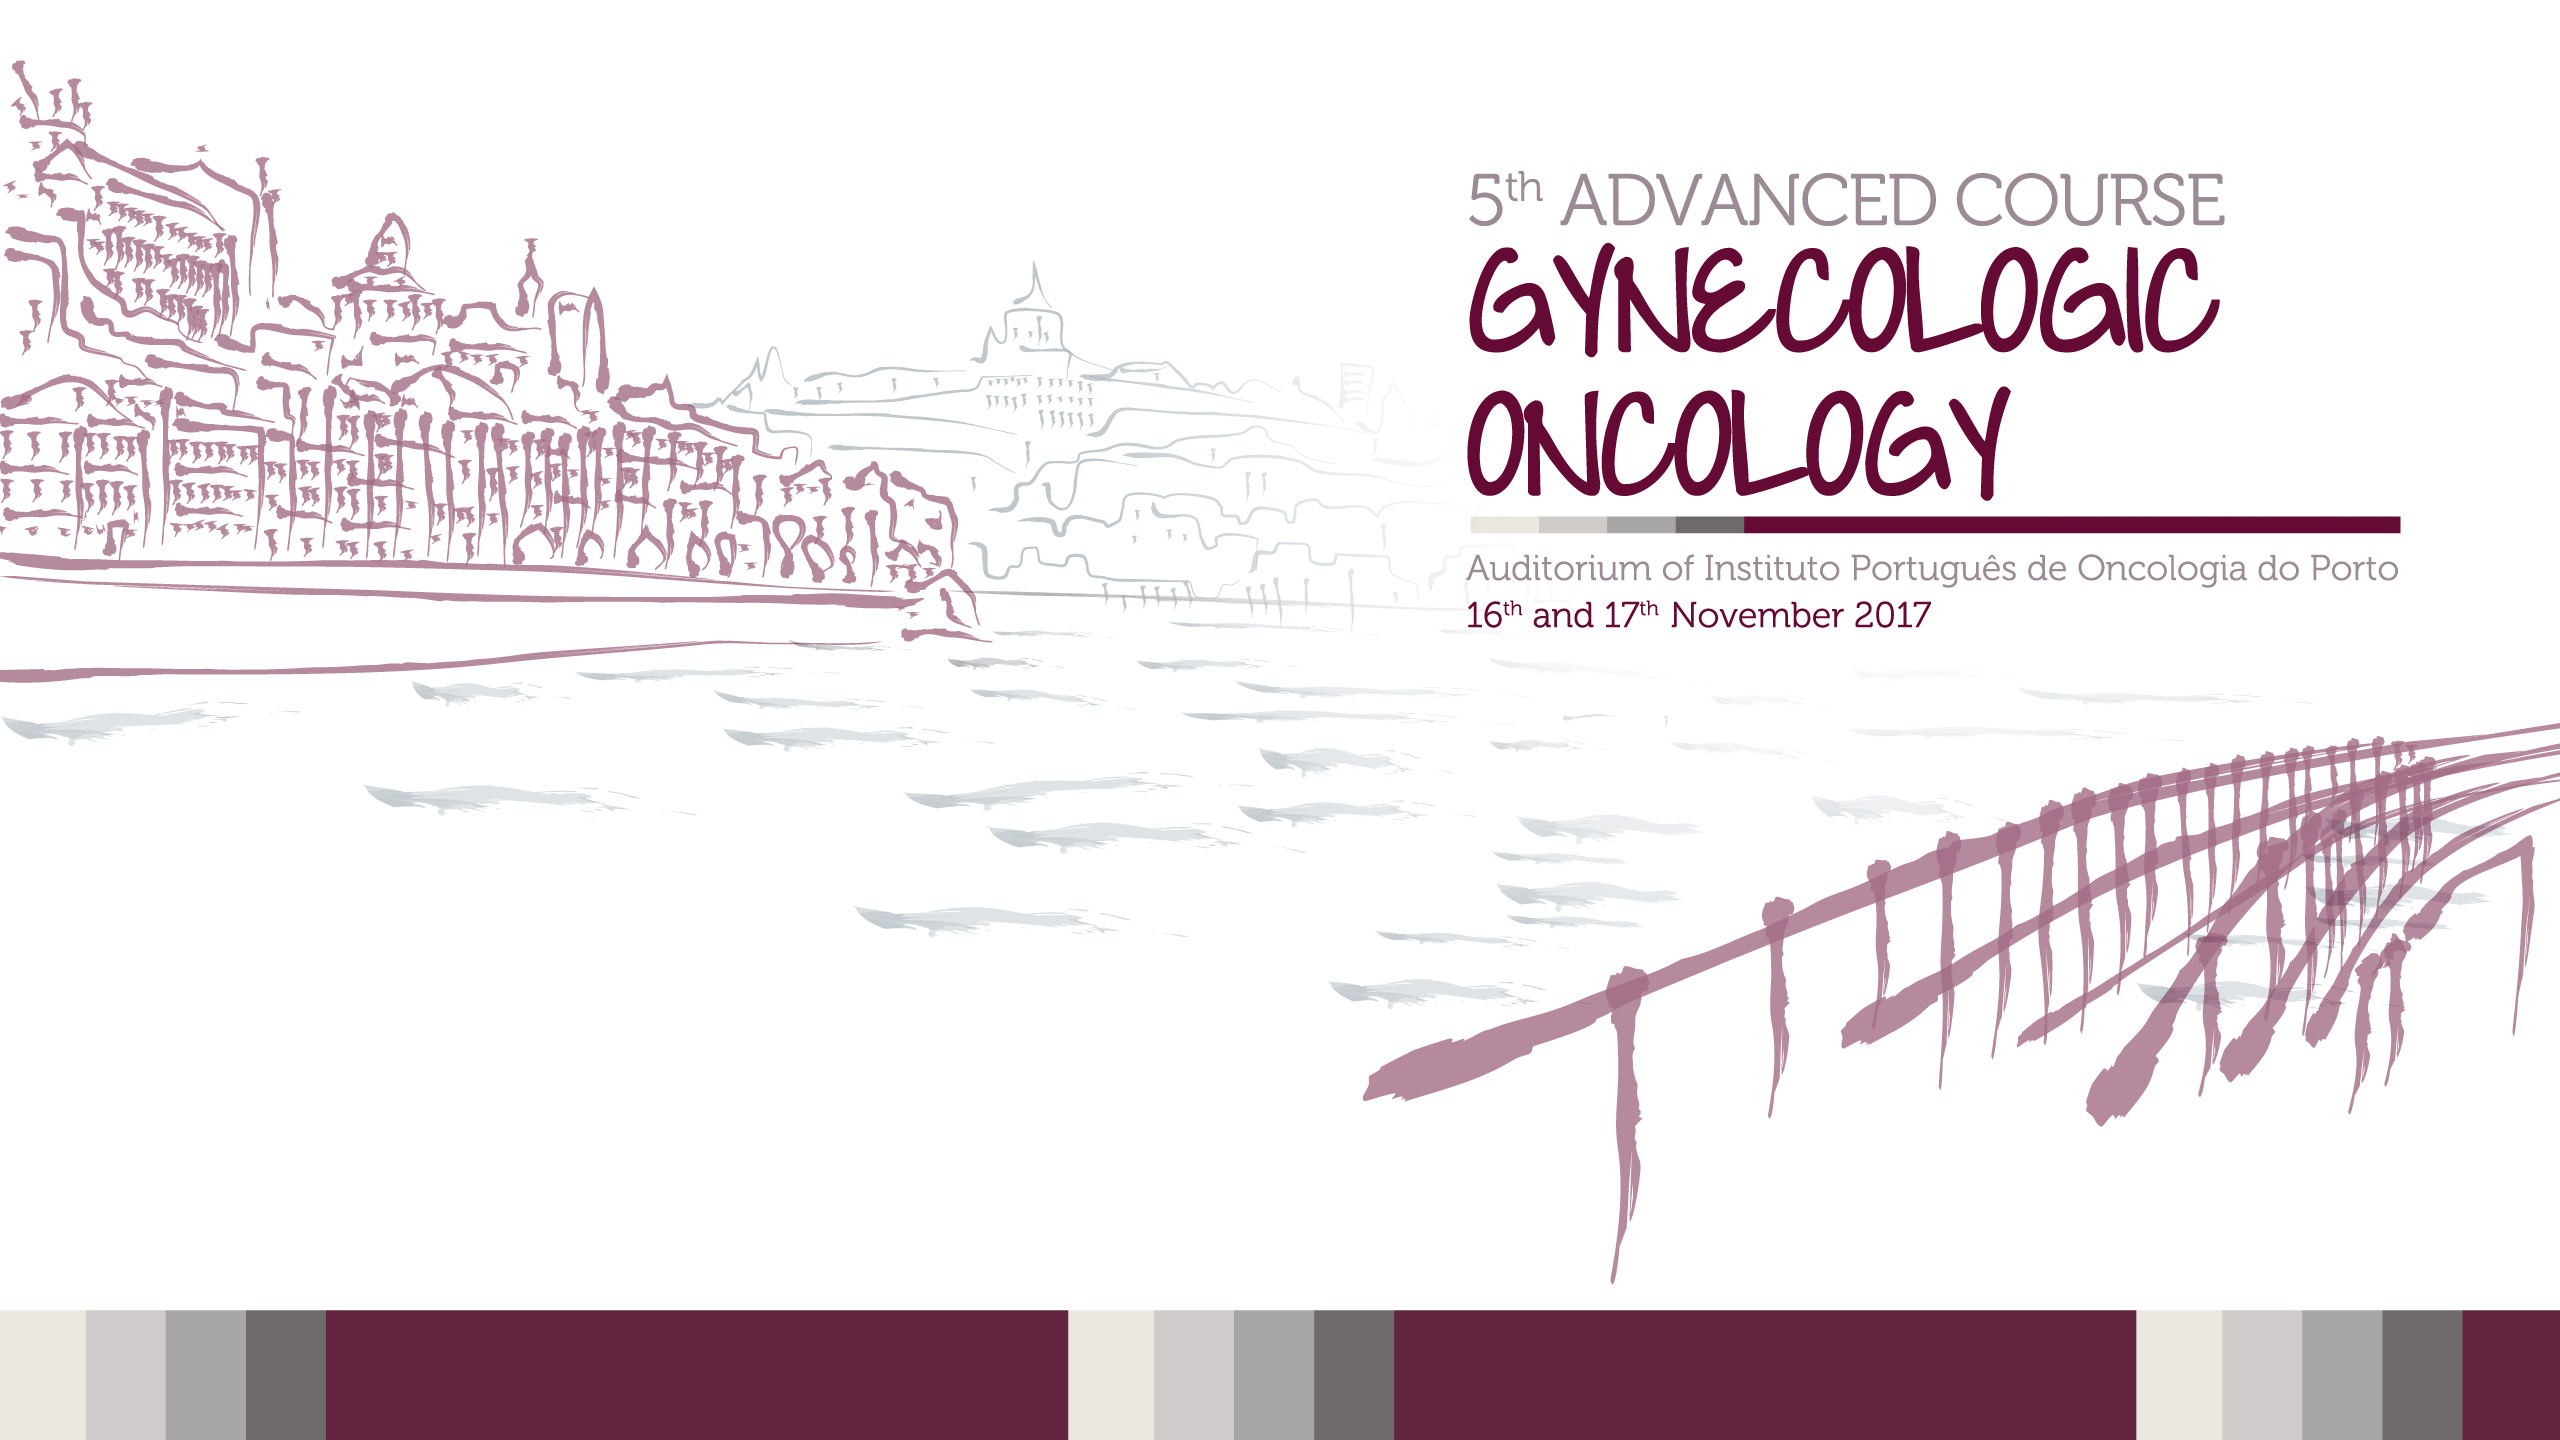 Gynecologic Oncology